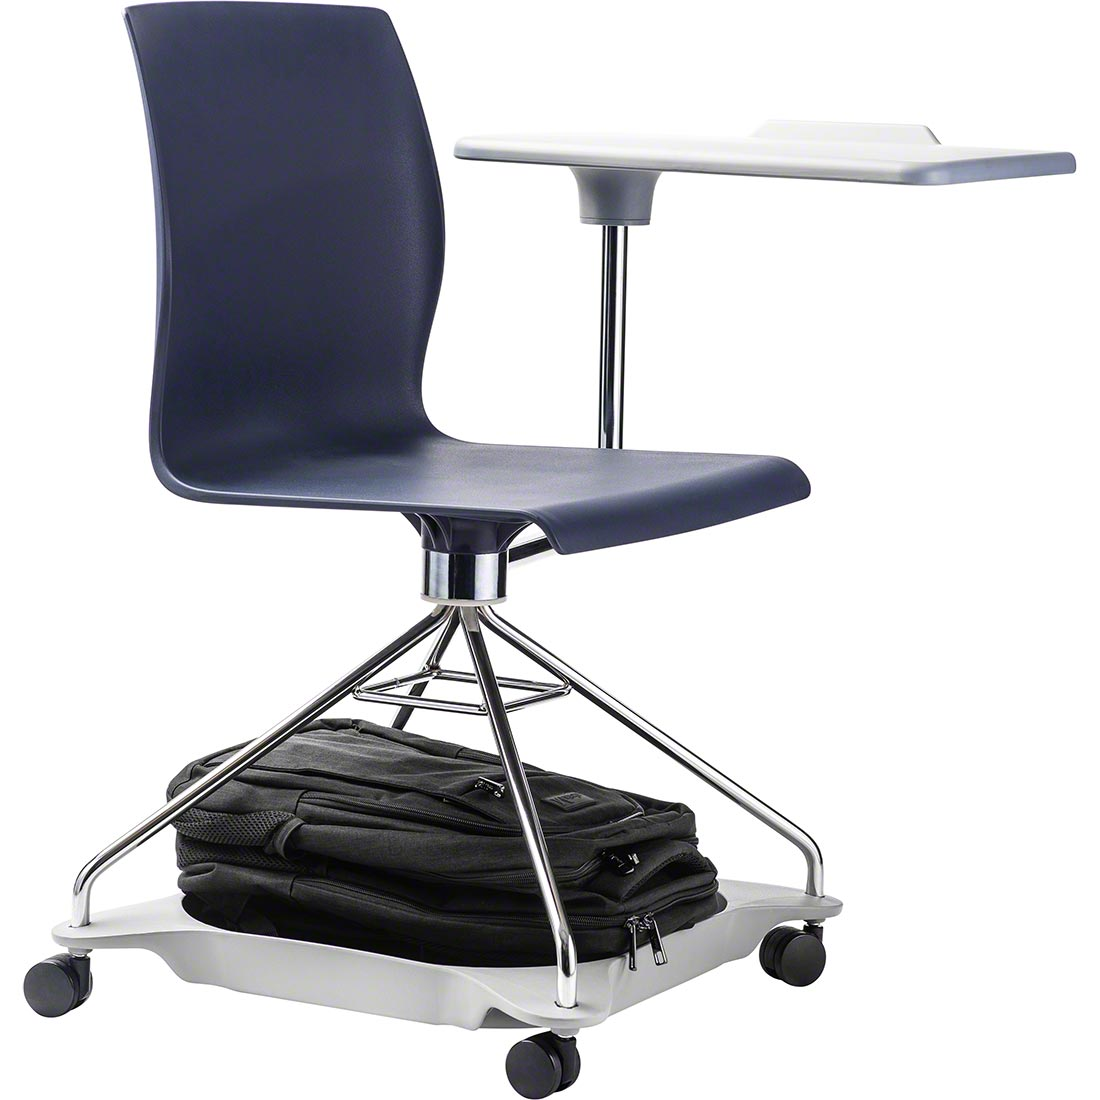 Tablet Arm Chair >> National Public Seating Chair On The Go Mobile Tablet Arm Chairs